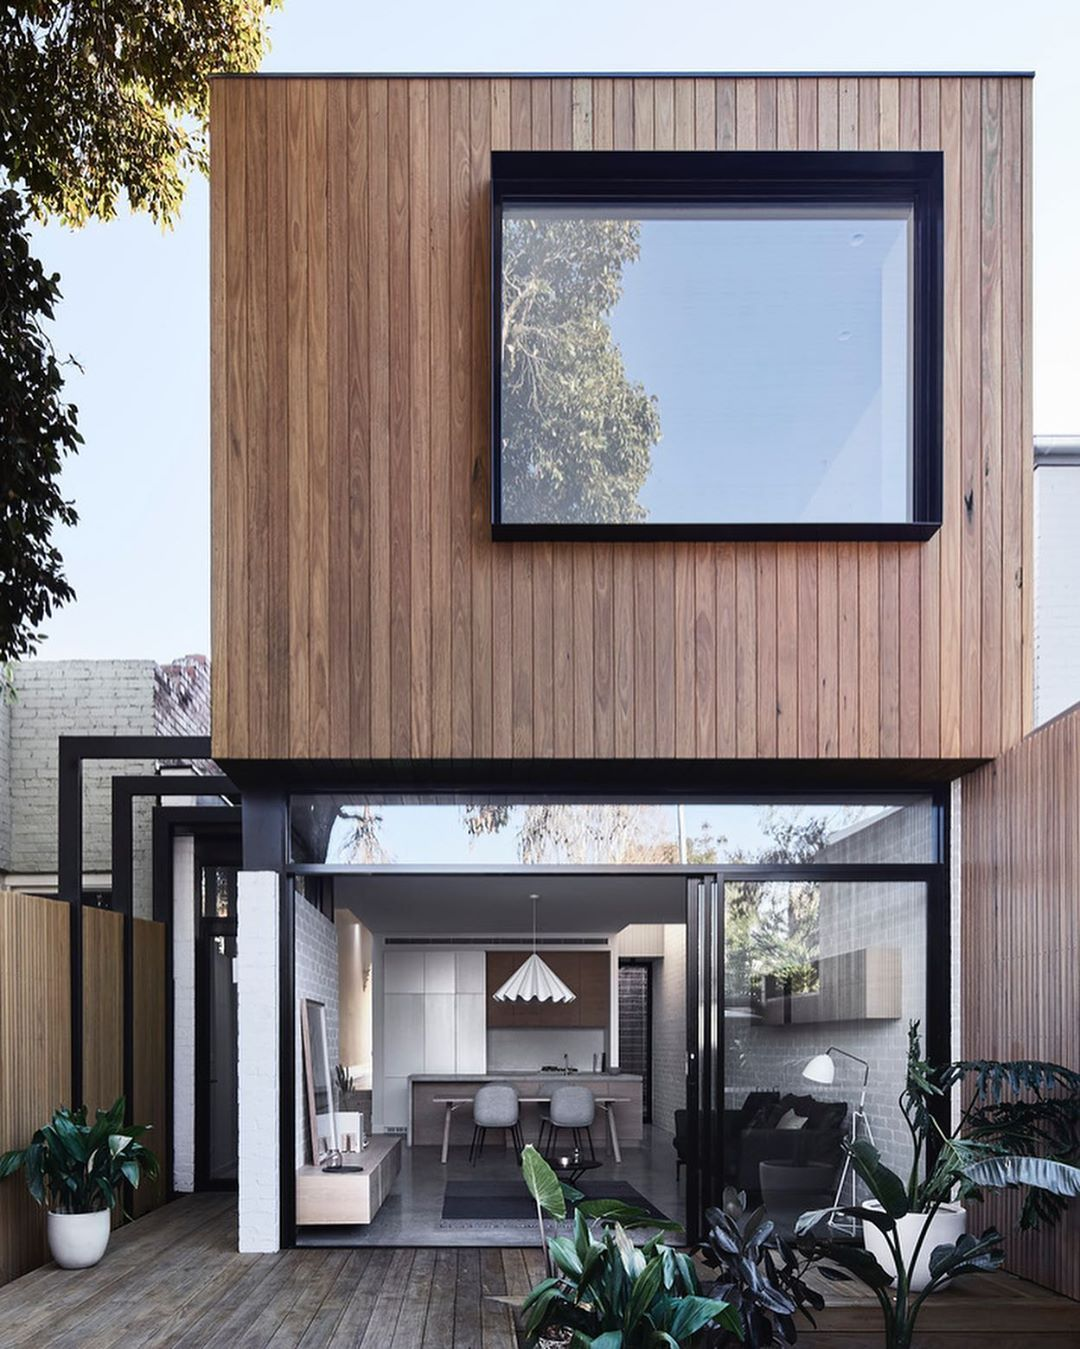 All About Architecture On Instagram Lorddarchitecture What Do You Think About This House Loft House Design By Tom Robertson Archit 2020 작은 집 집 디자인 콘테이너 하우스